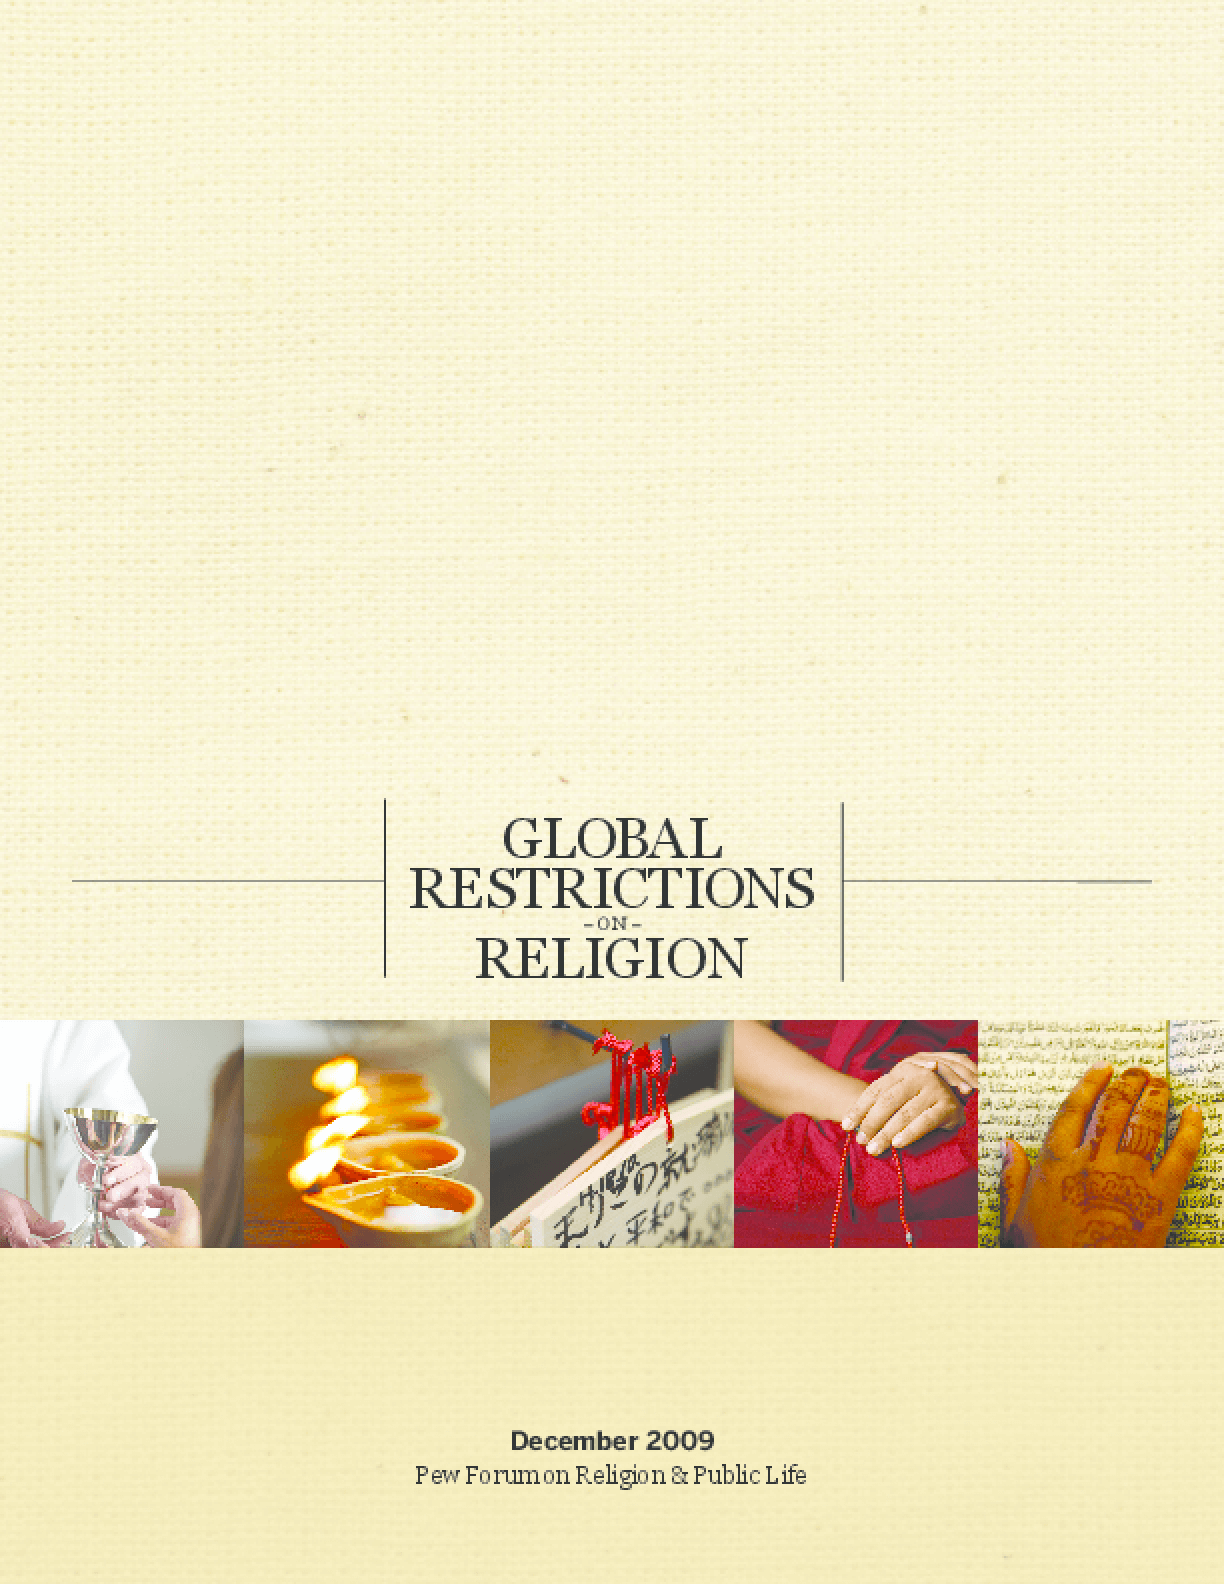 Global Restrictions on Religion